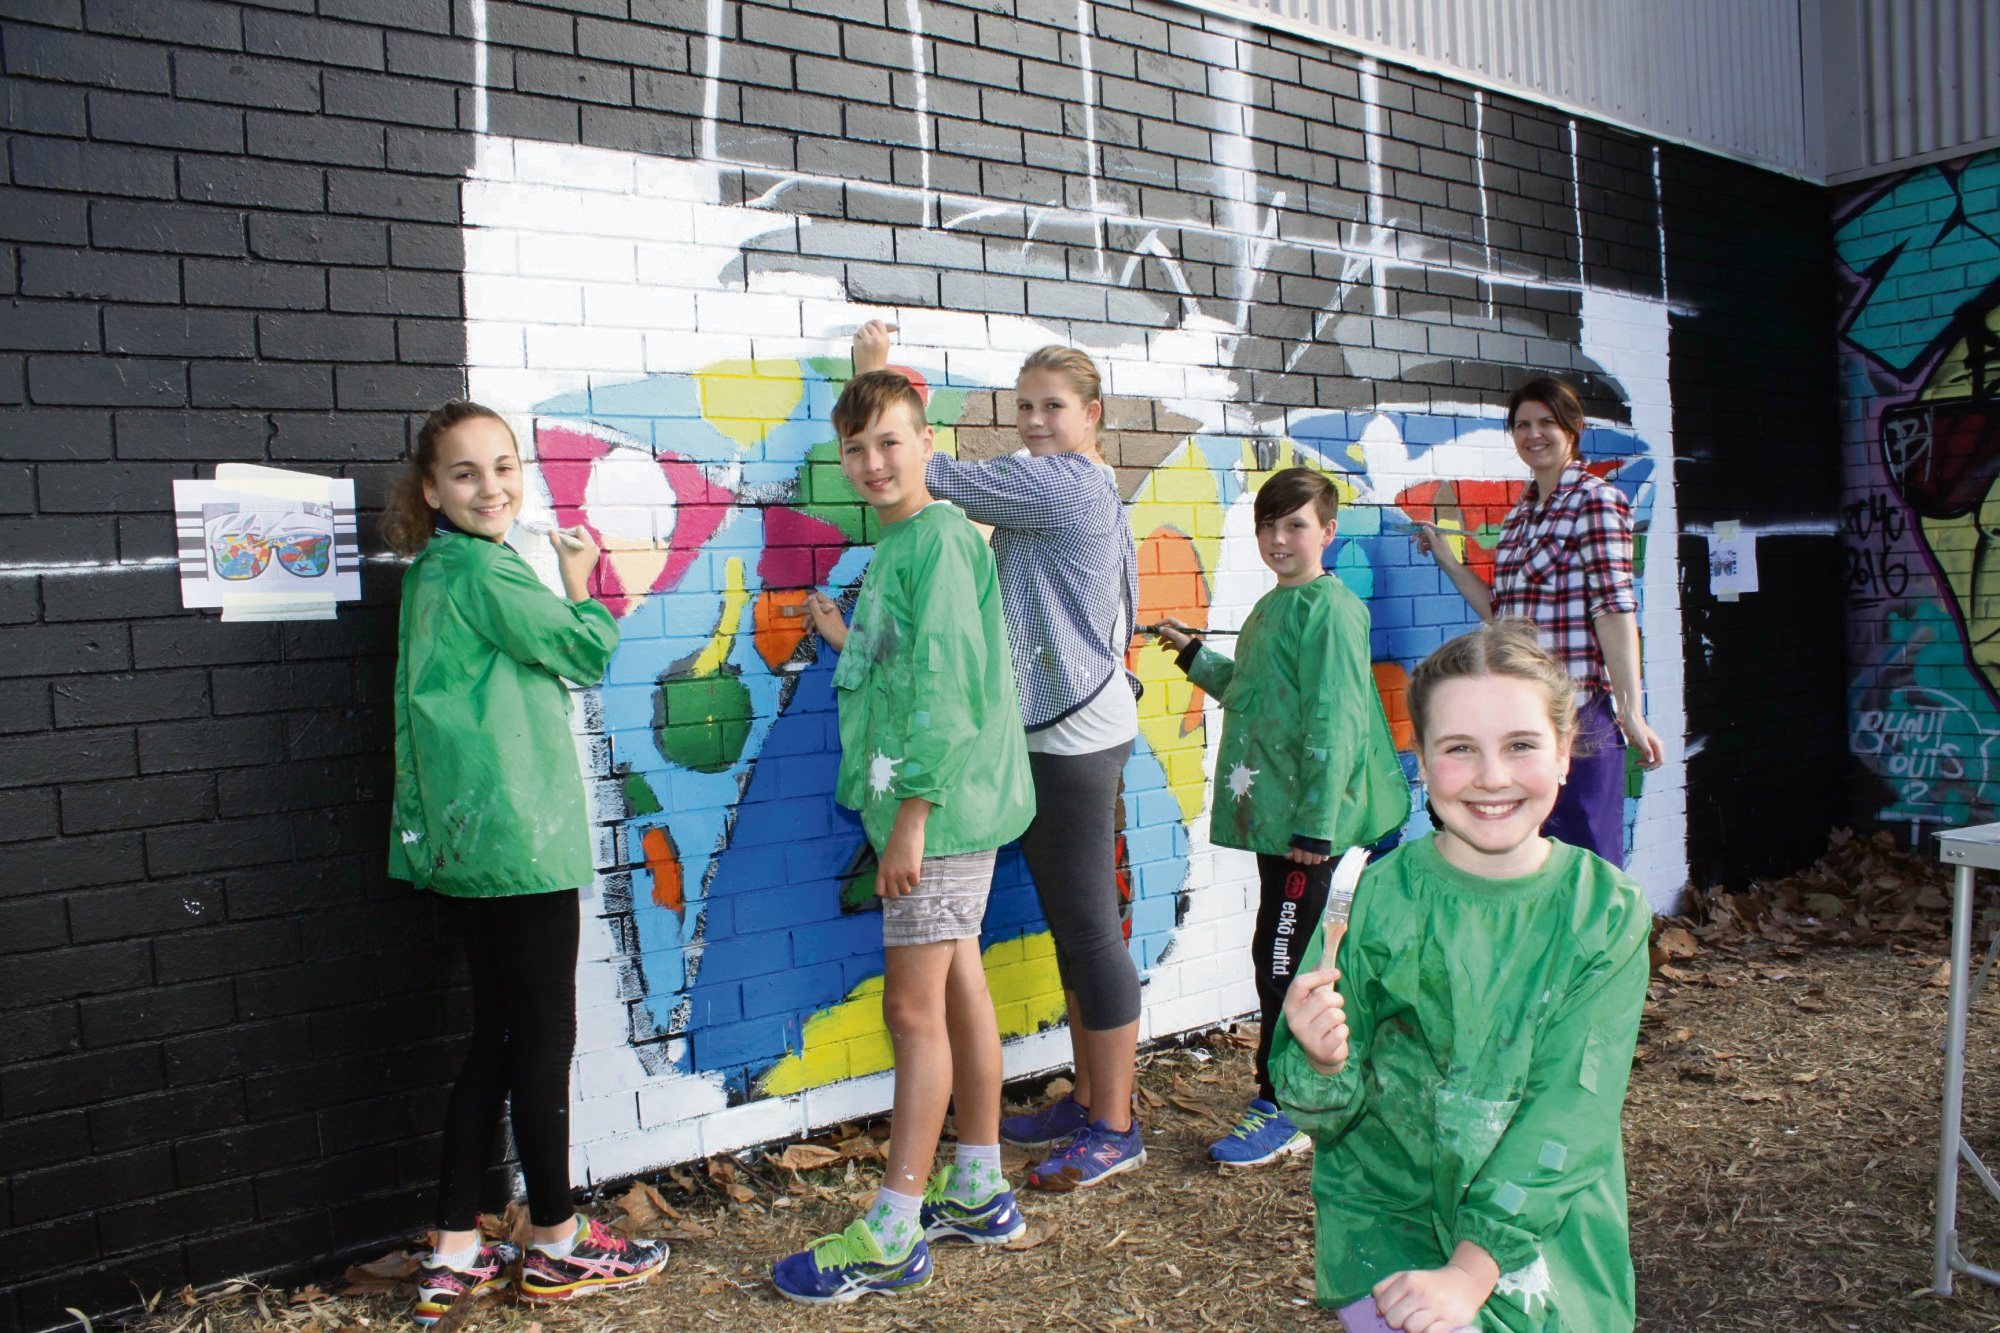 Rockingham: Take pART gets local schools involved in spreading happiness